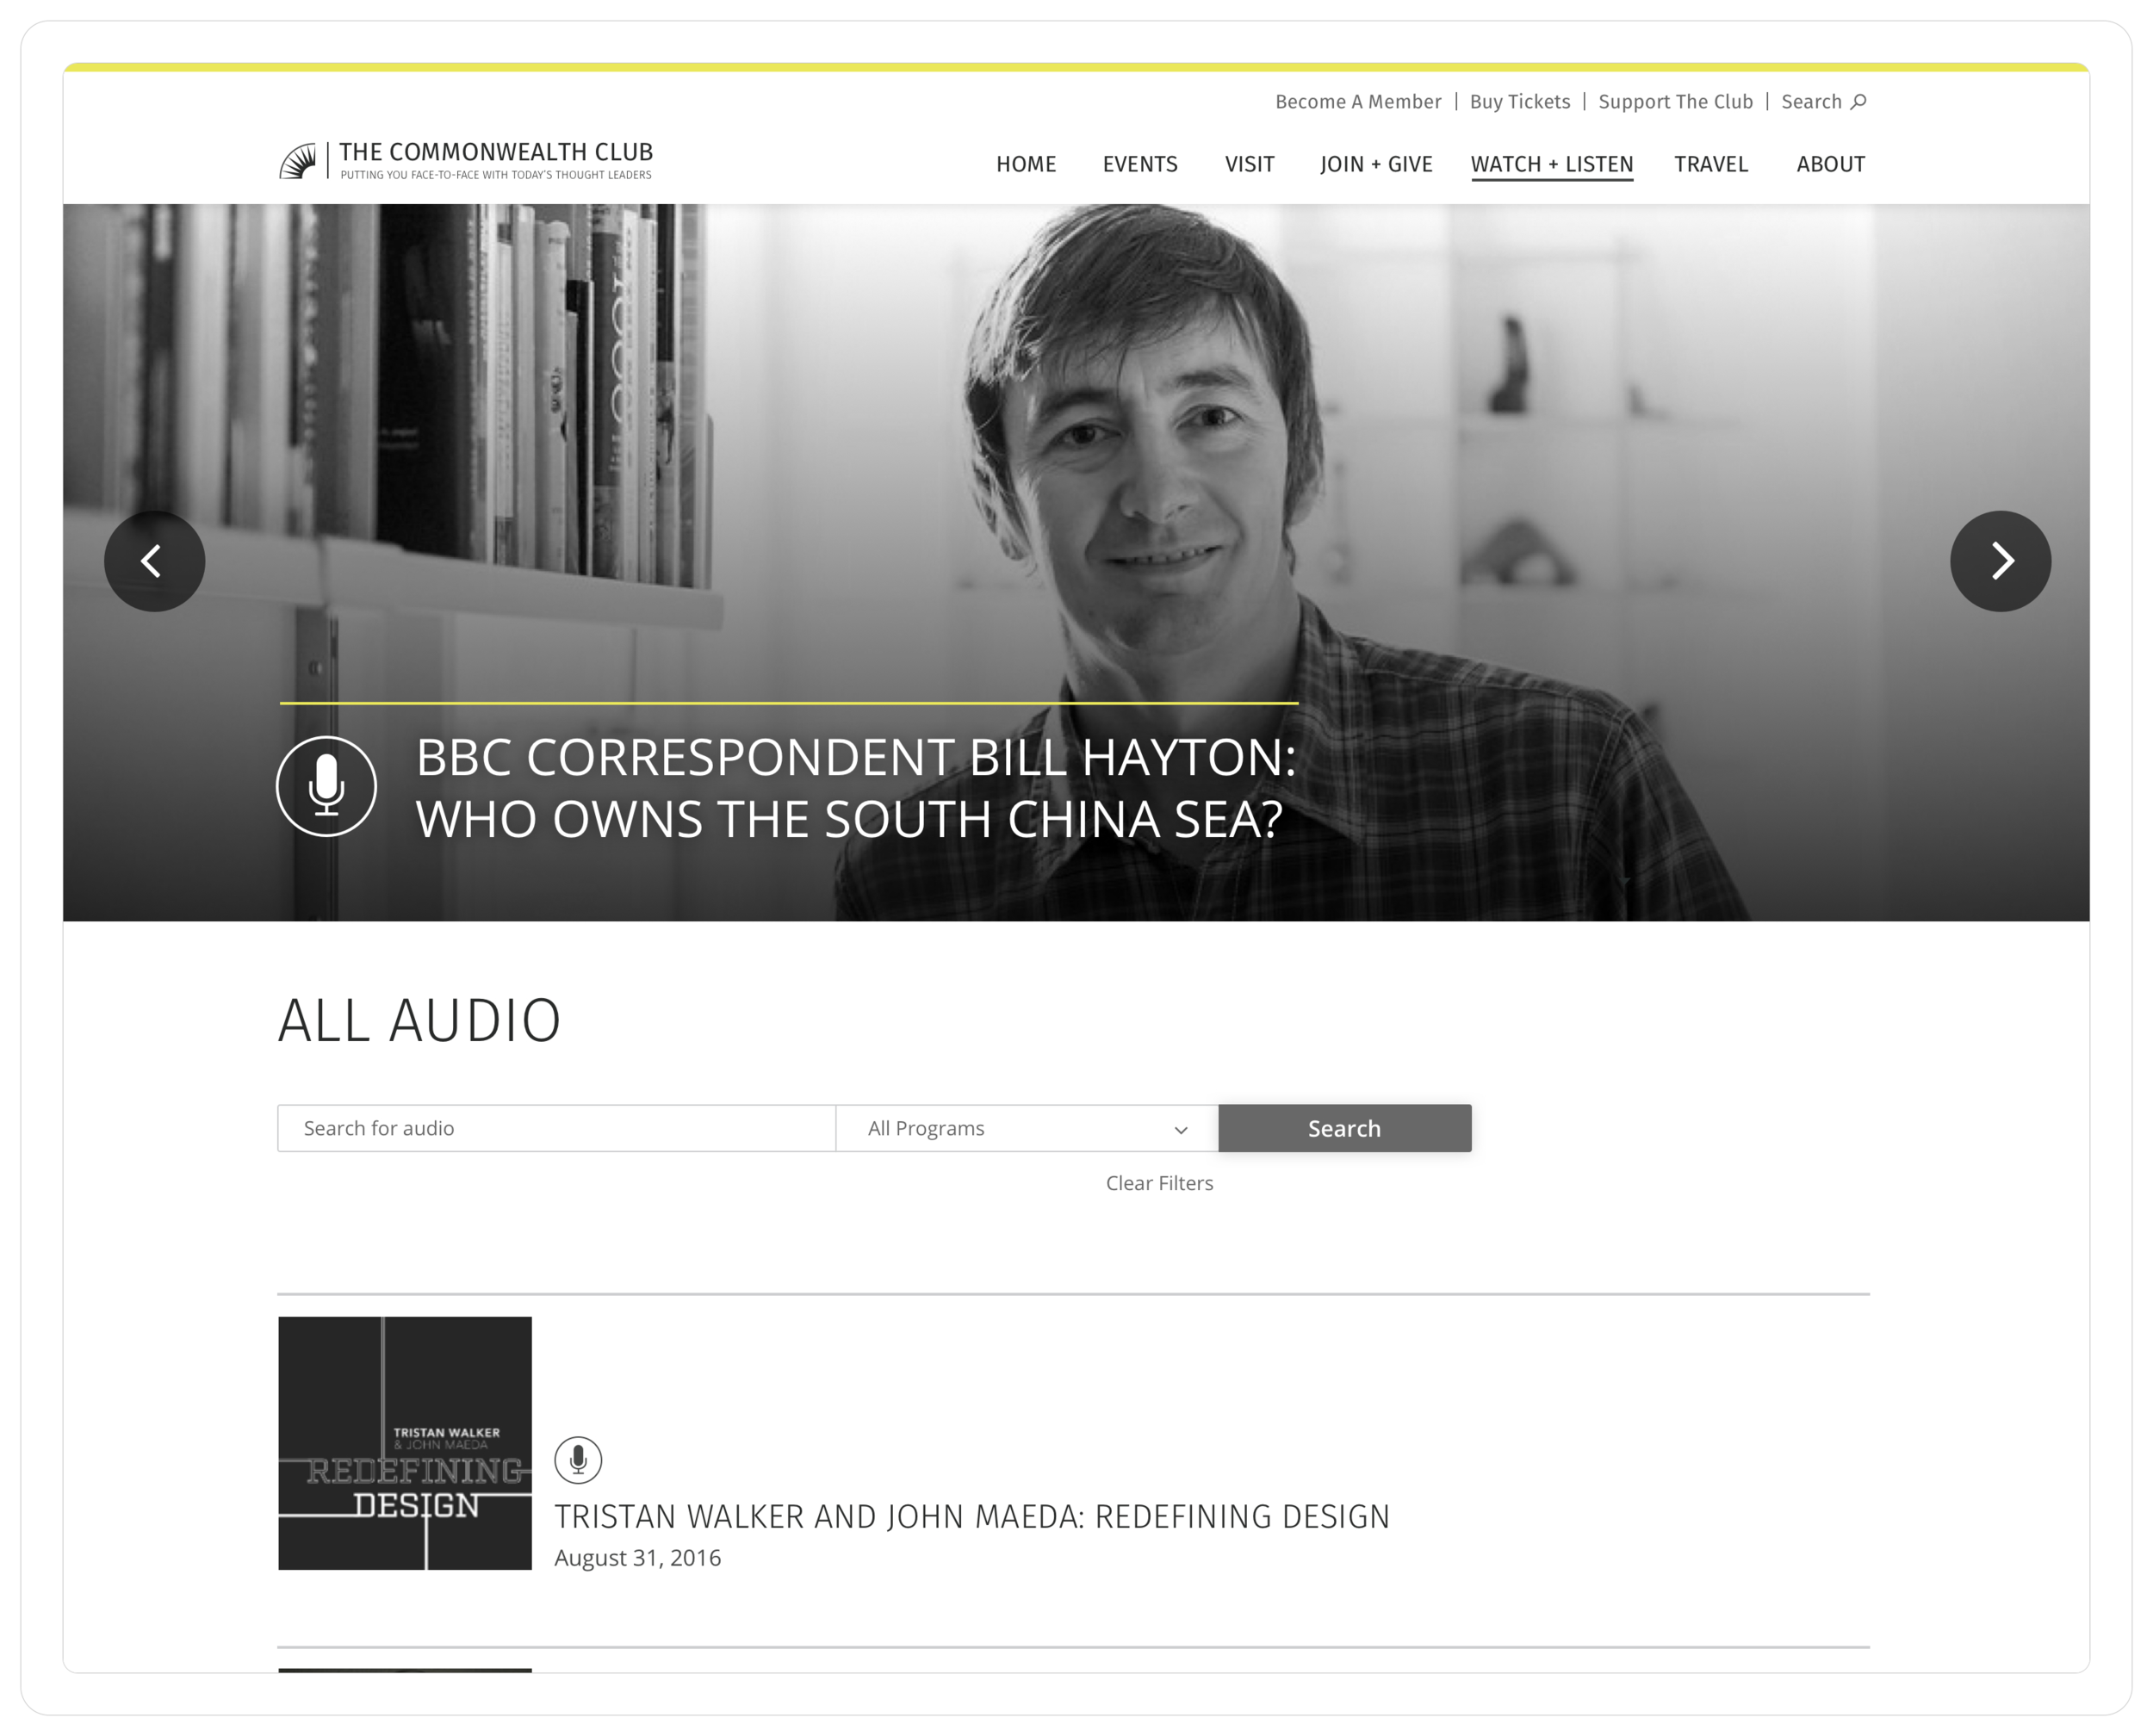 All audio recordings page